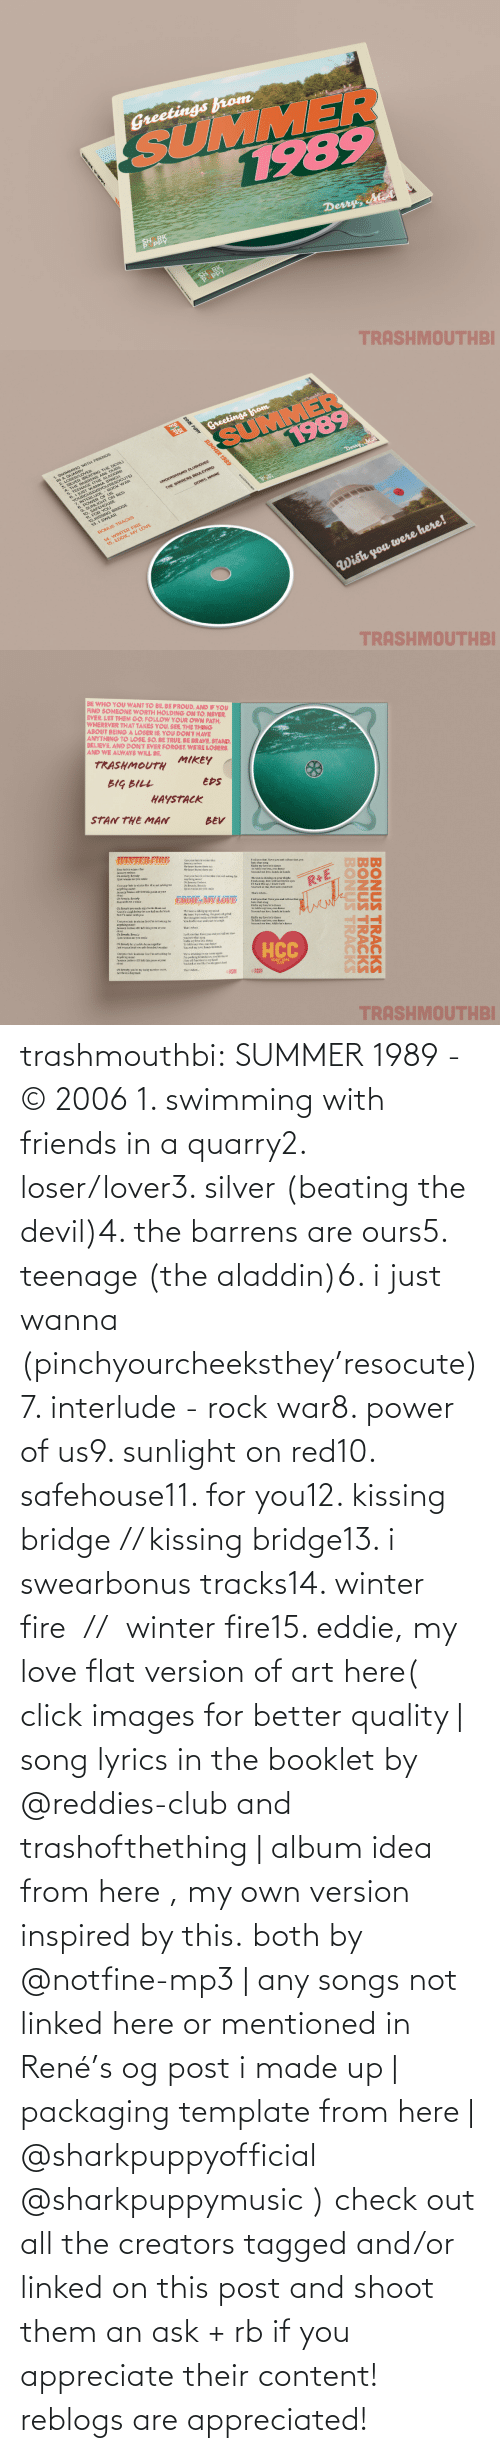 thus: trashmouthbi: SUMMER 1989 - © 2006 1. swimming with friends in a quarry2. loser/lover3. silver (beating the devil)4. the barrens are ours5. teenage (the aladdin)6. i just wanna (pinchyourcheeksthey'resocute)7. interlude - rock war8. power of us9. sunlight on red10. safehouse11. for you12. kissing bridge // kissing bridge13. i swearbonus tracks14. winter fire  //  winter fire15. eddie, my love flat version of art here( click images for better quality | song lyrics in the booklet by @reddies-club​ and trashofthething | album idea from here , my own version inspired by this. both by @notfine-mp3​ | any songs not linked here or mentioned in René's og post i made up | packaging template from here | @sharkpuppyofficial​ @sharkpuppymusic​ ) check out all the creators tagged and/or linked on this post and shoot them an ask + rb if you appreciate their content! reblogs are appreciated!